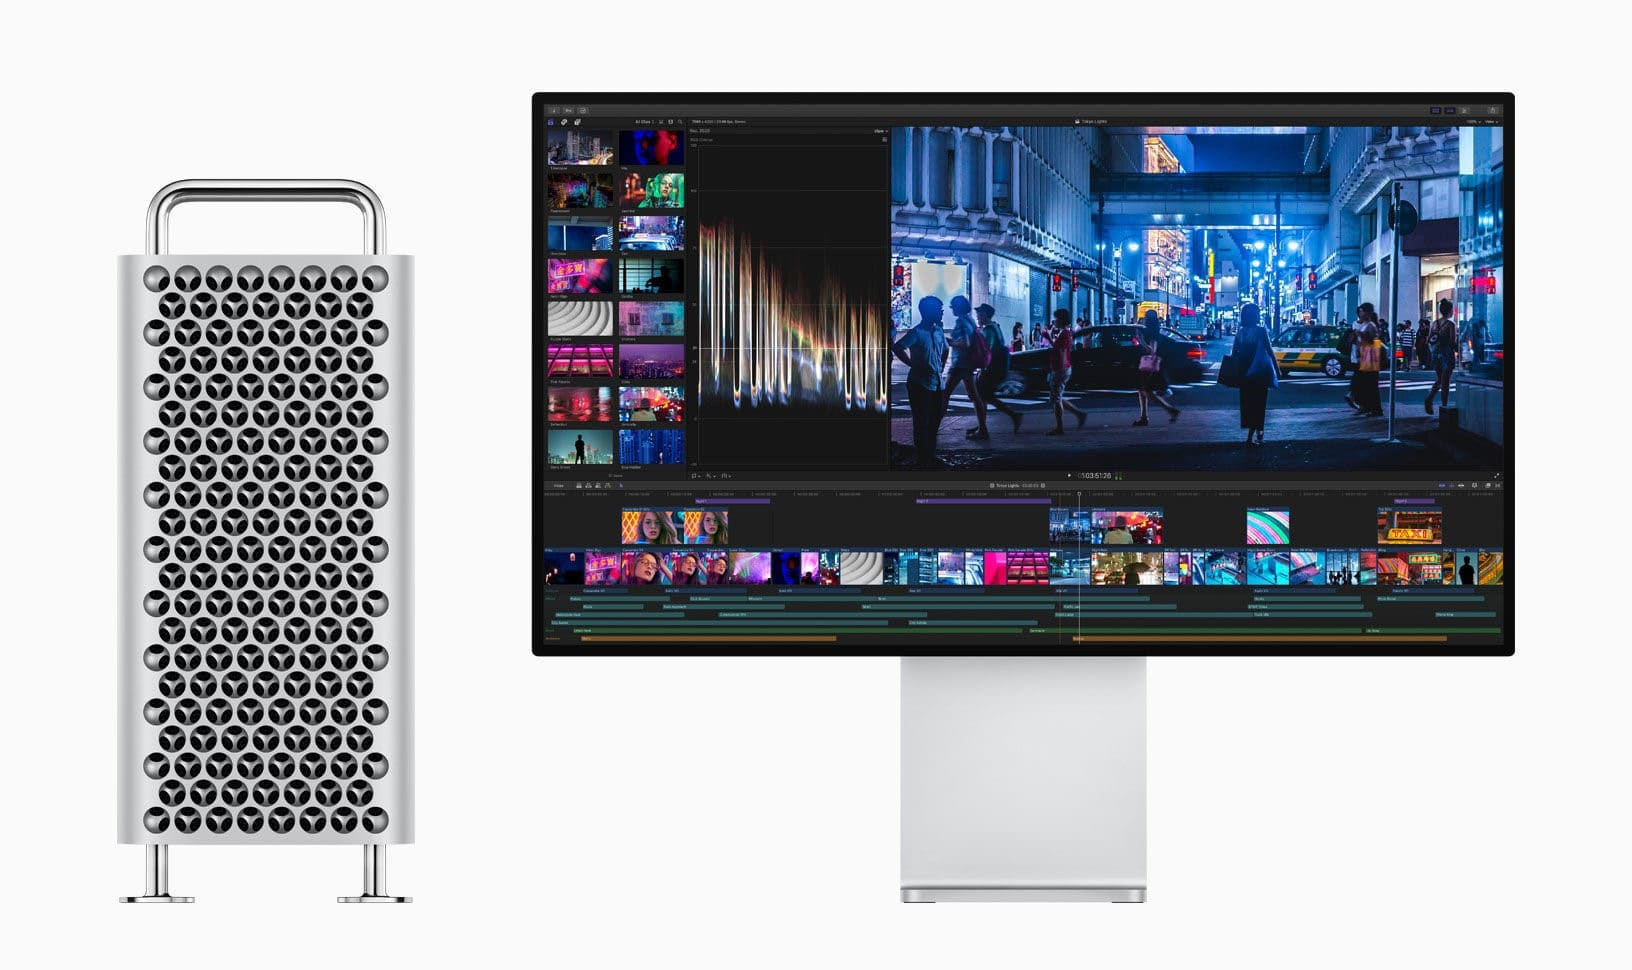 new mac pro is very expensive